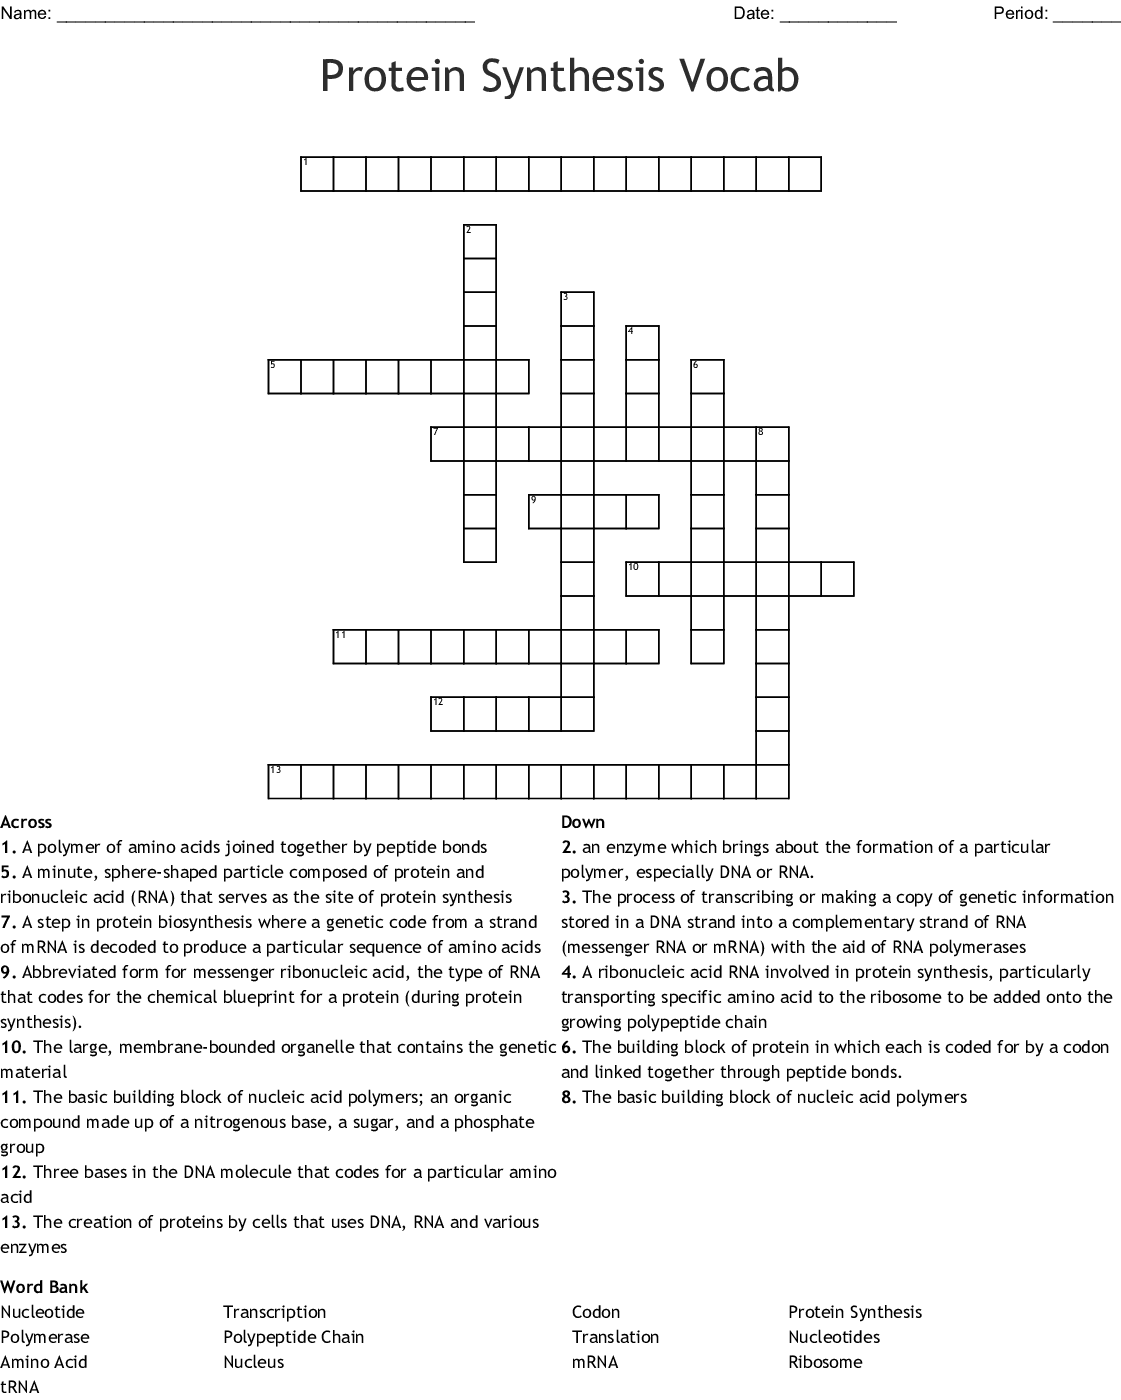 Protein Synthesis Vocab Crossword